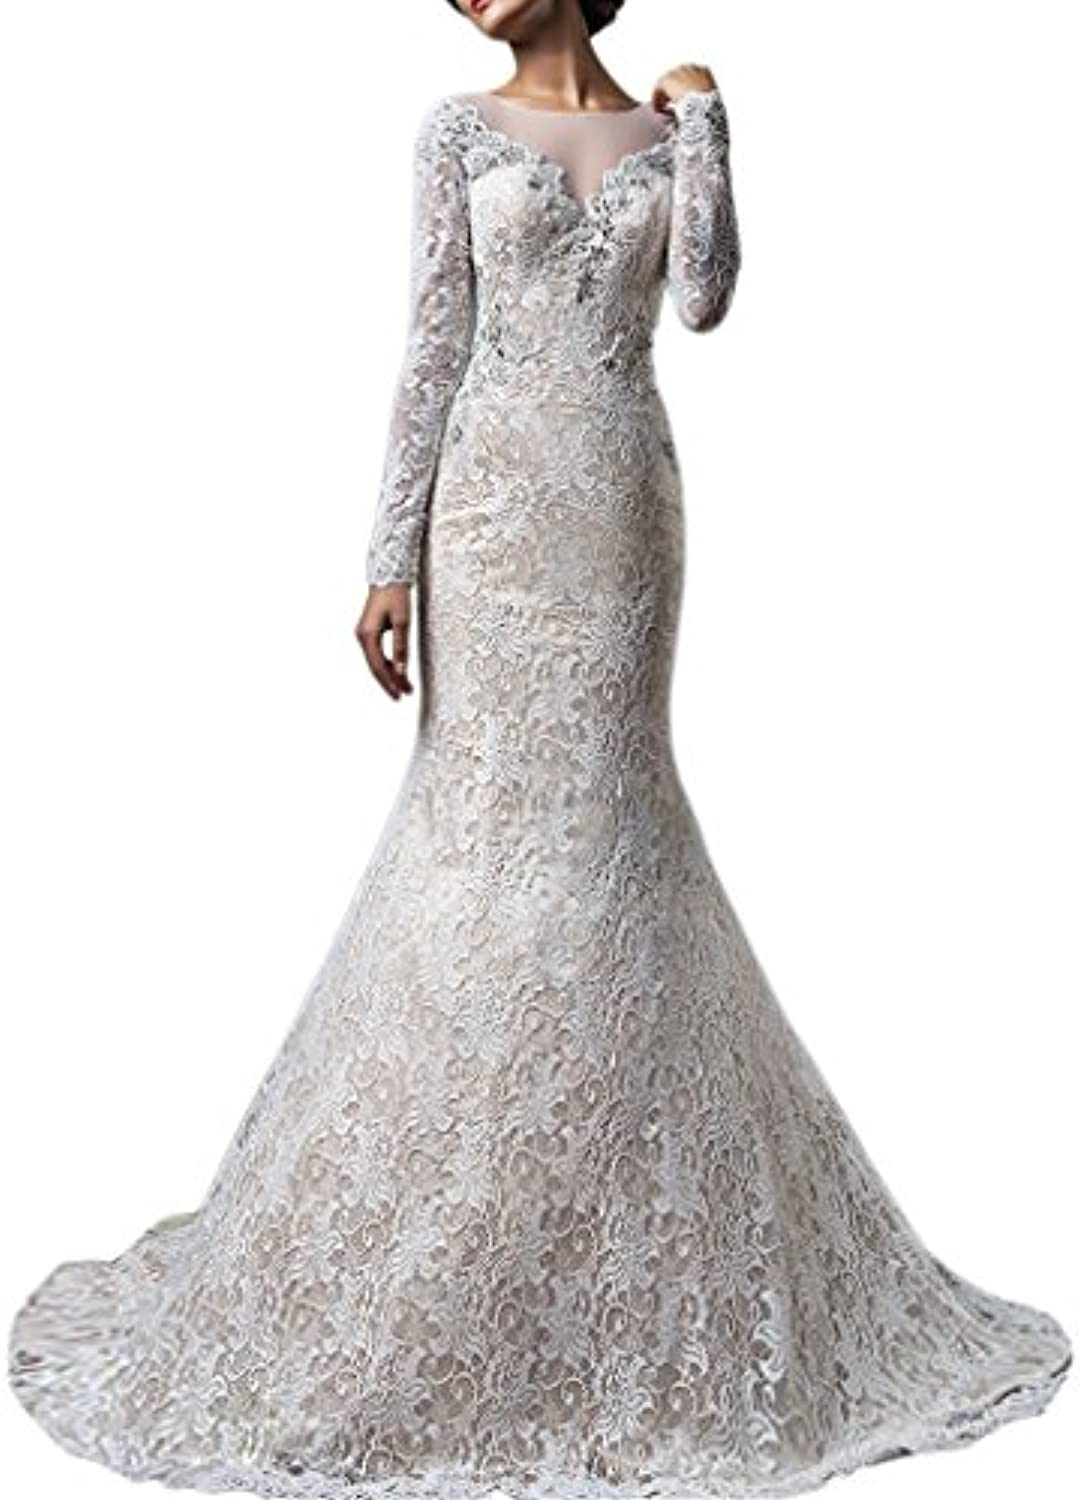 Beilite Women's Long Sleeves Mermaid Lace Wedding Dresses with Appliques